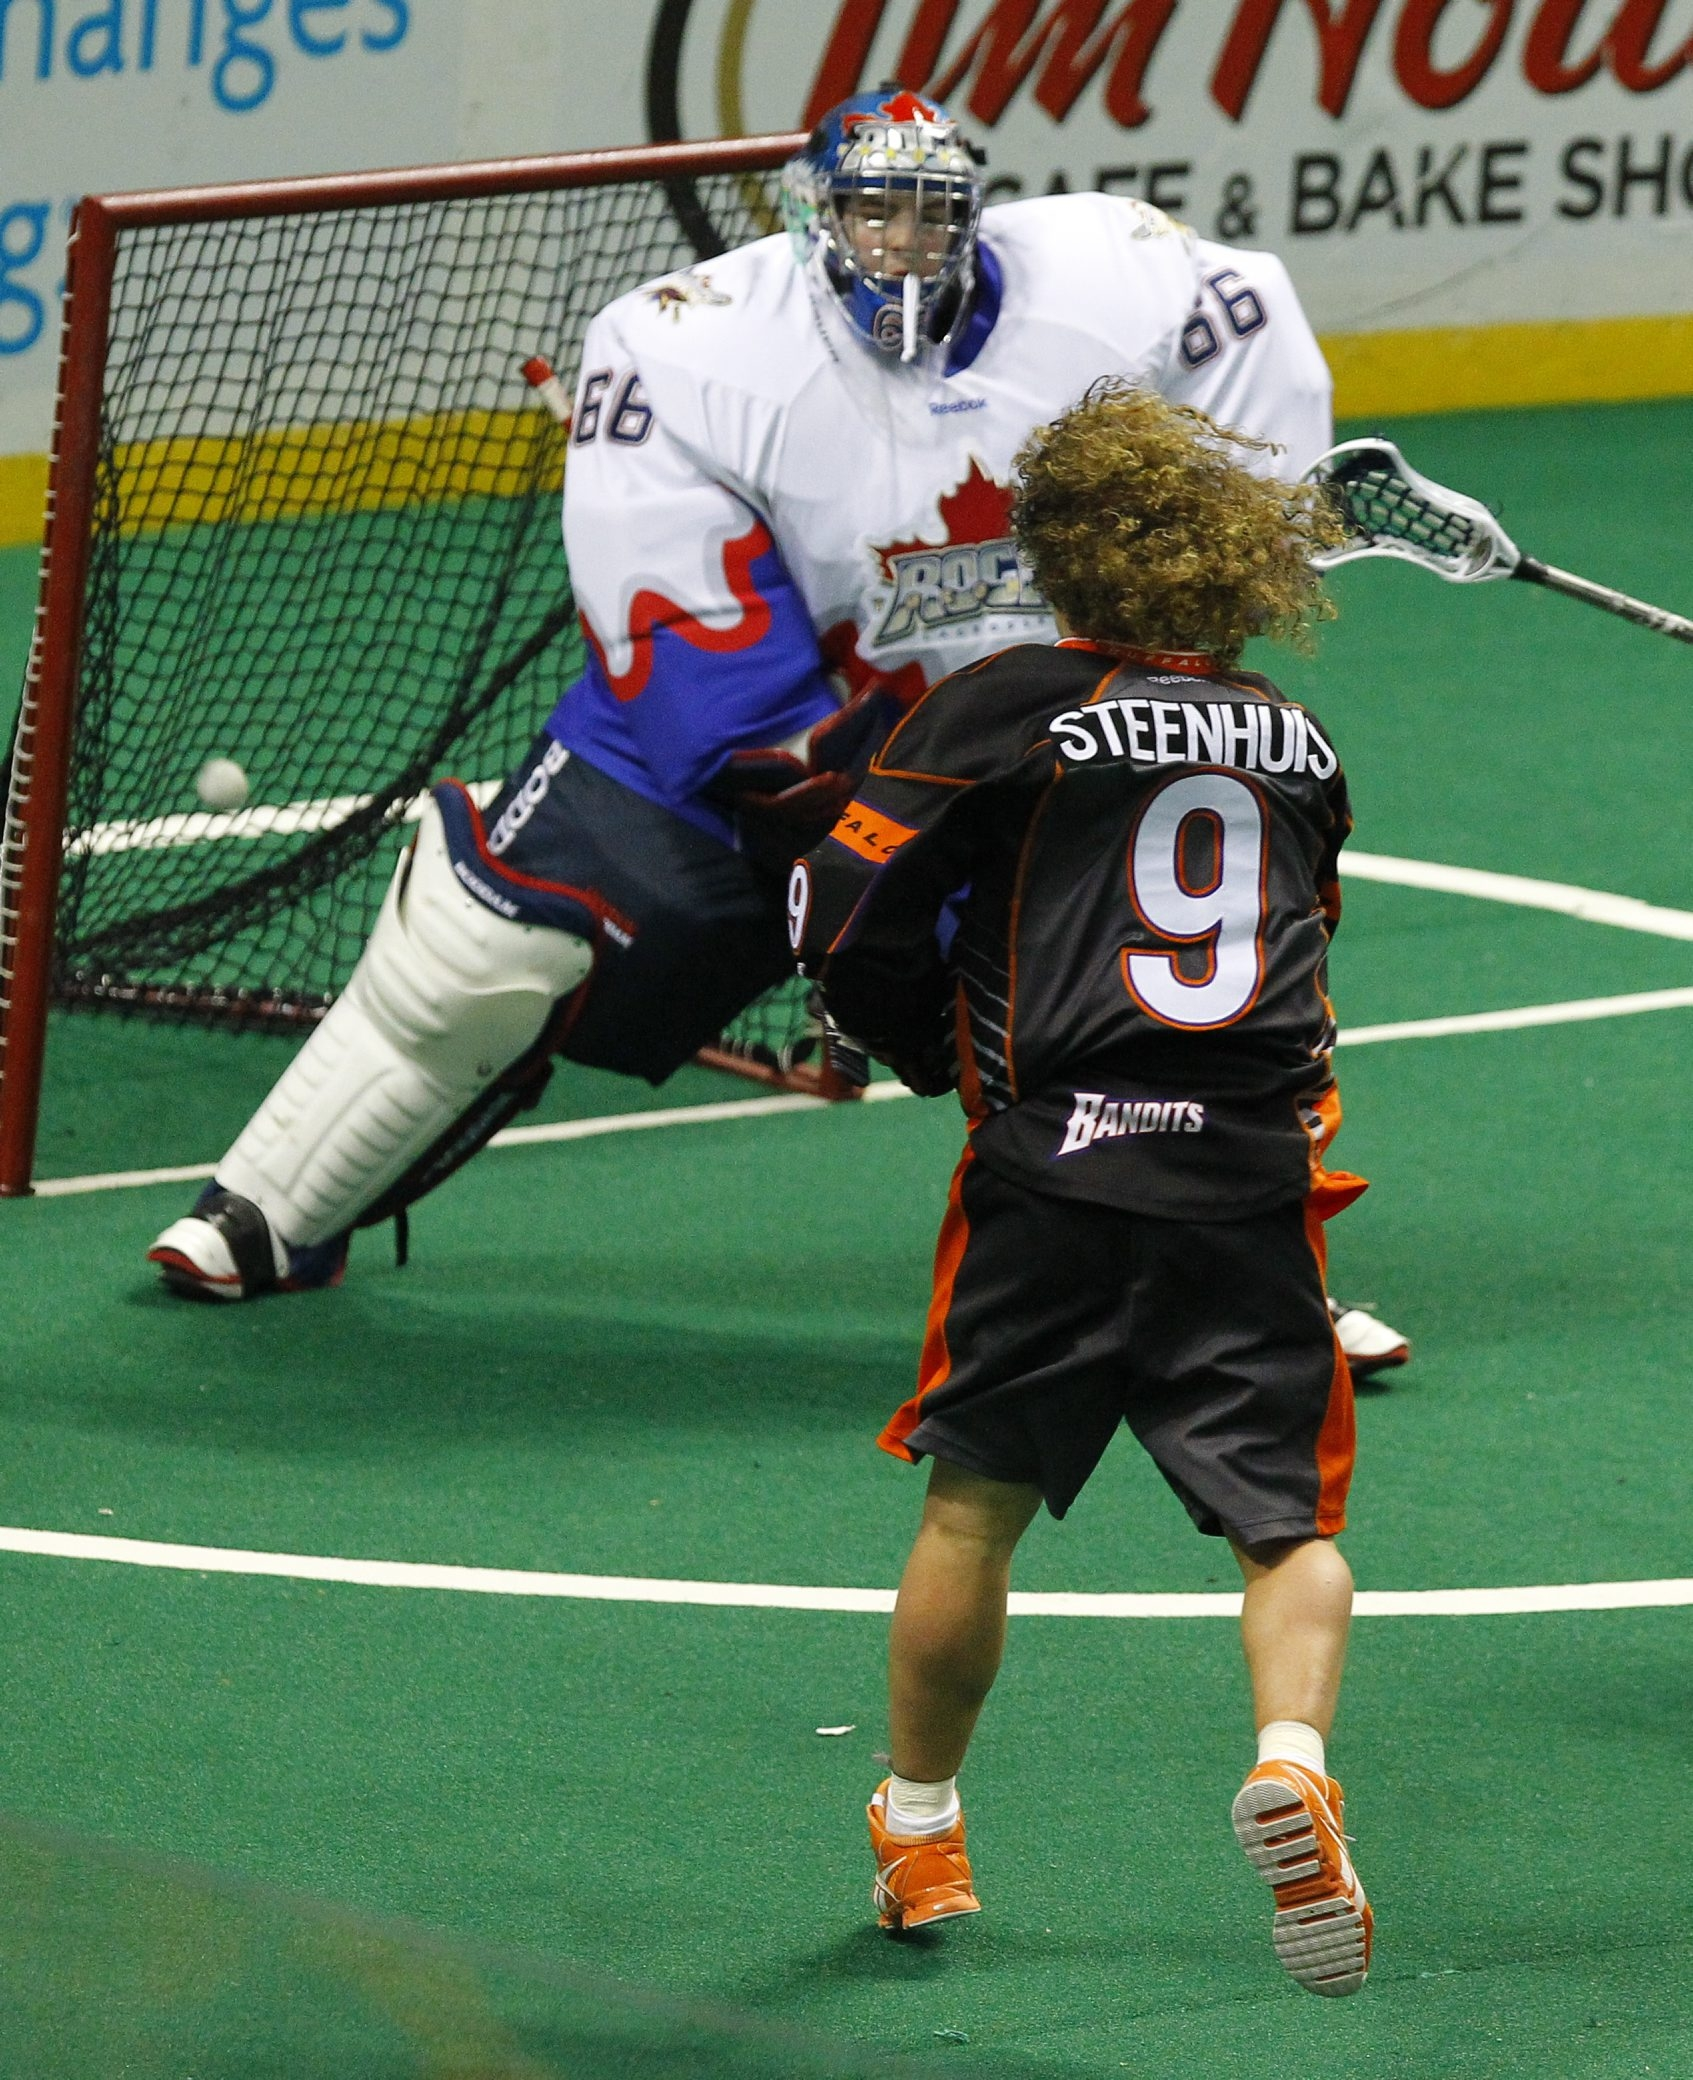 This goal against the Toronto Rock in 2013 is one of 400 that Mark Steenhuis has scored in his distinguished NLL career. (Photo by John Hickey / Buffalo News)